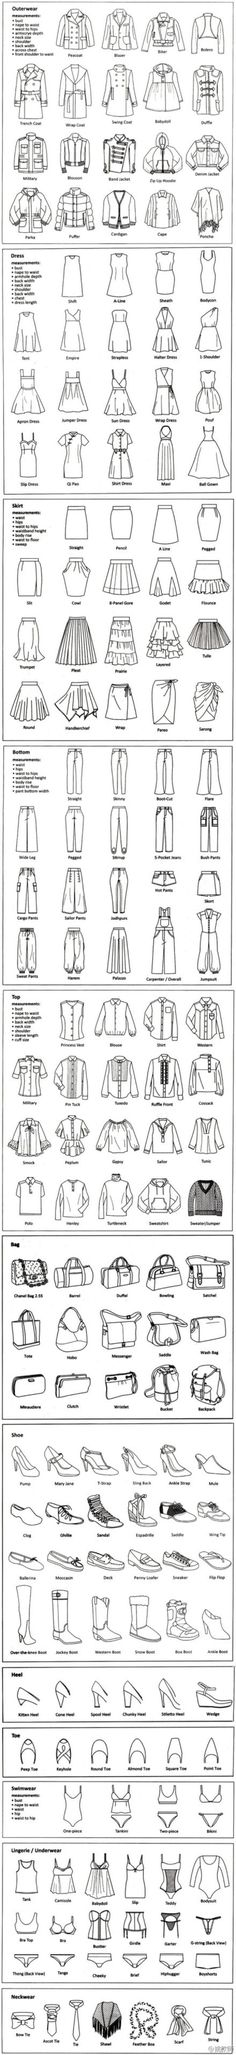 Infographic showing all the clothing styles a woman could ever want.